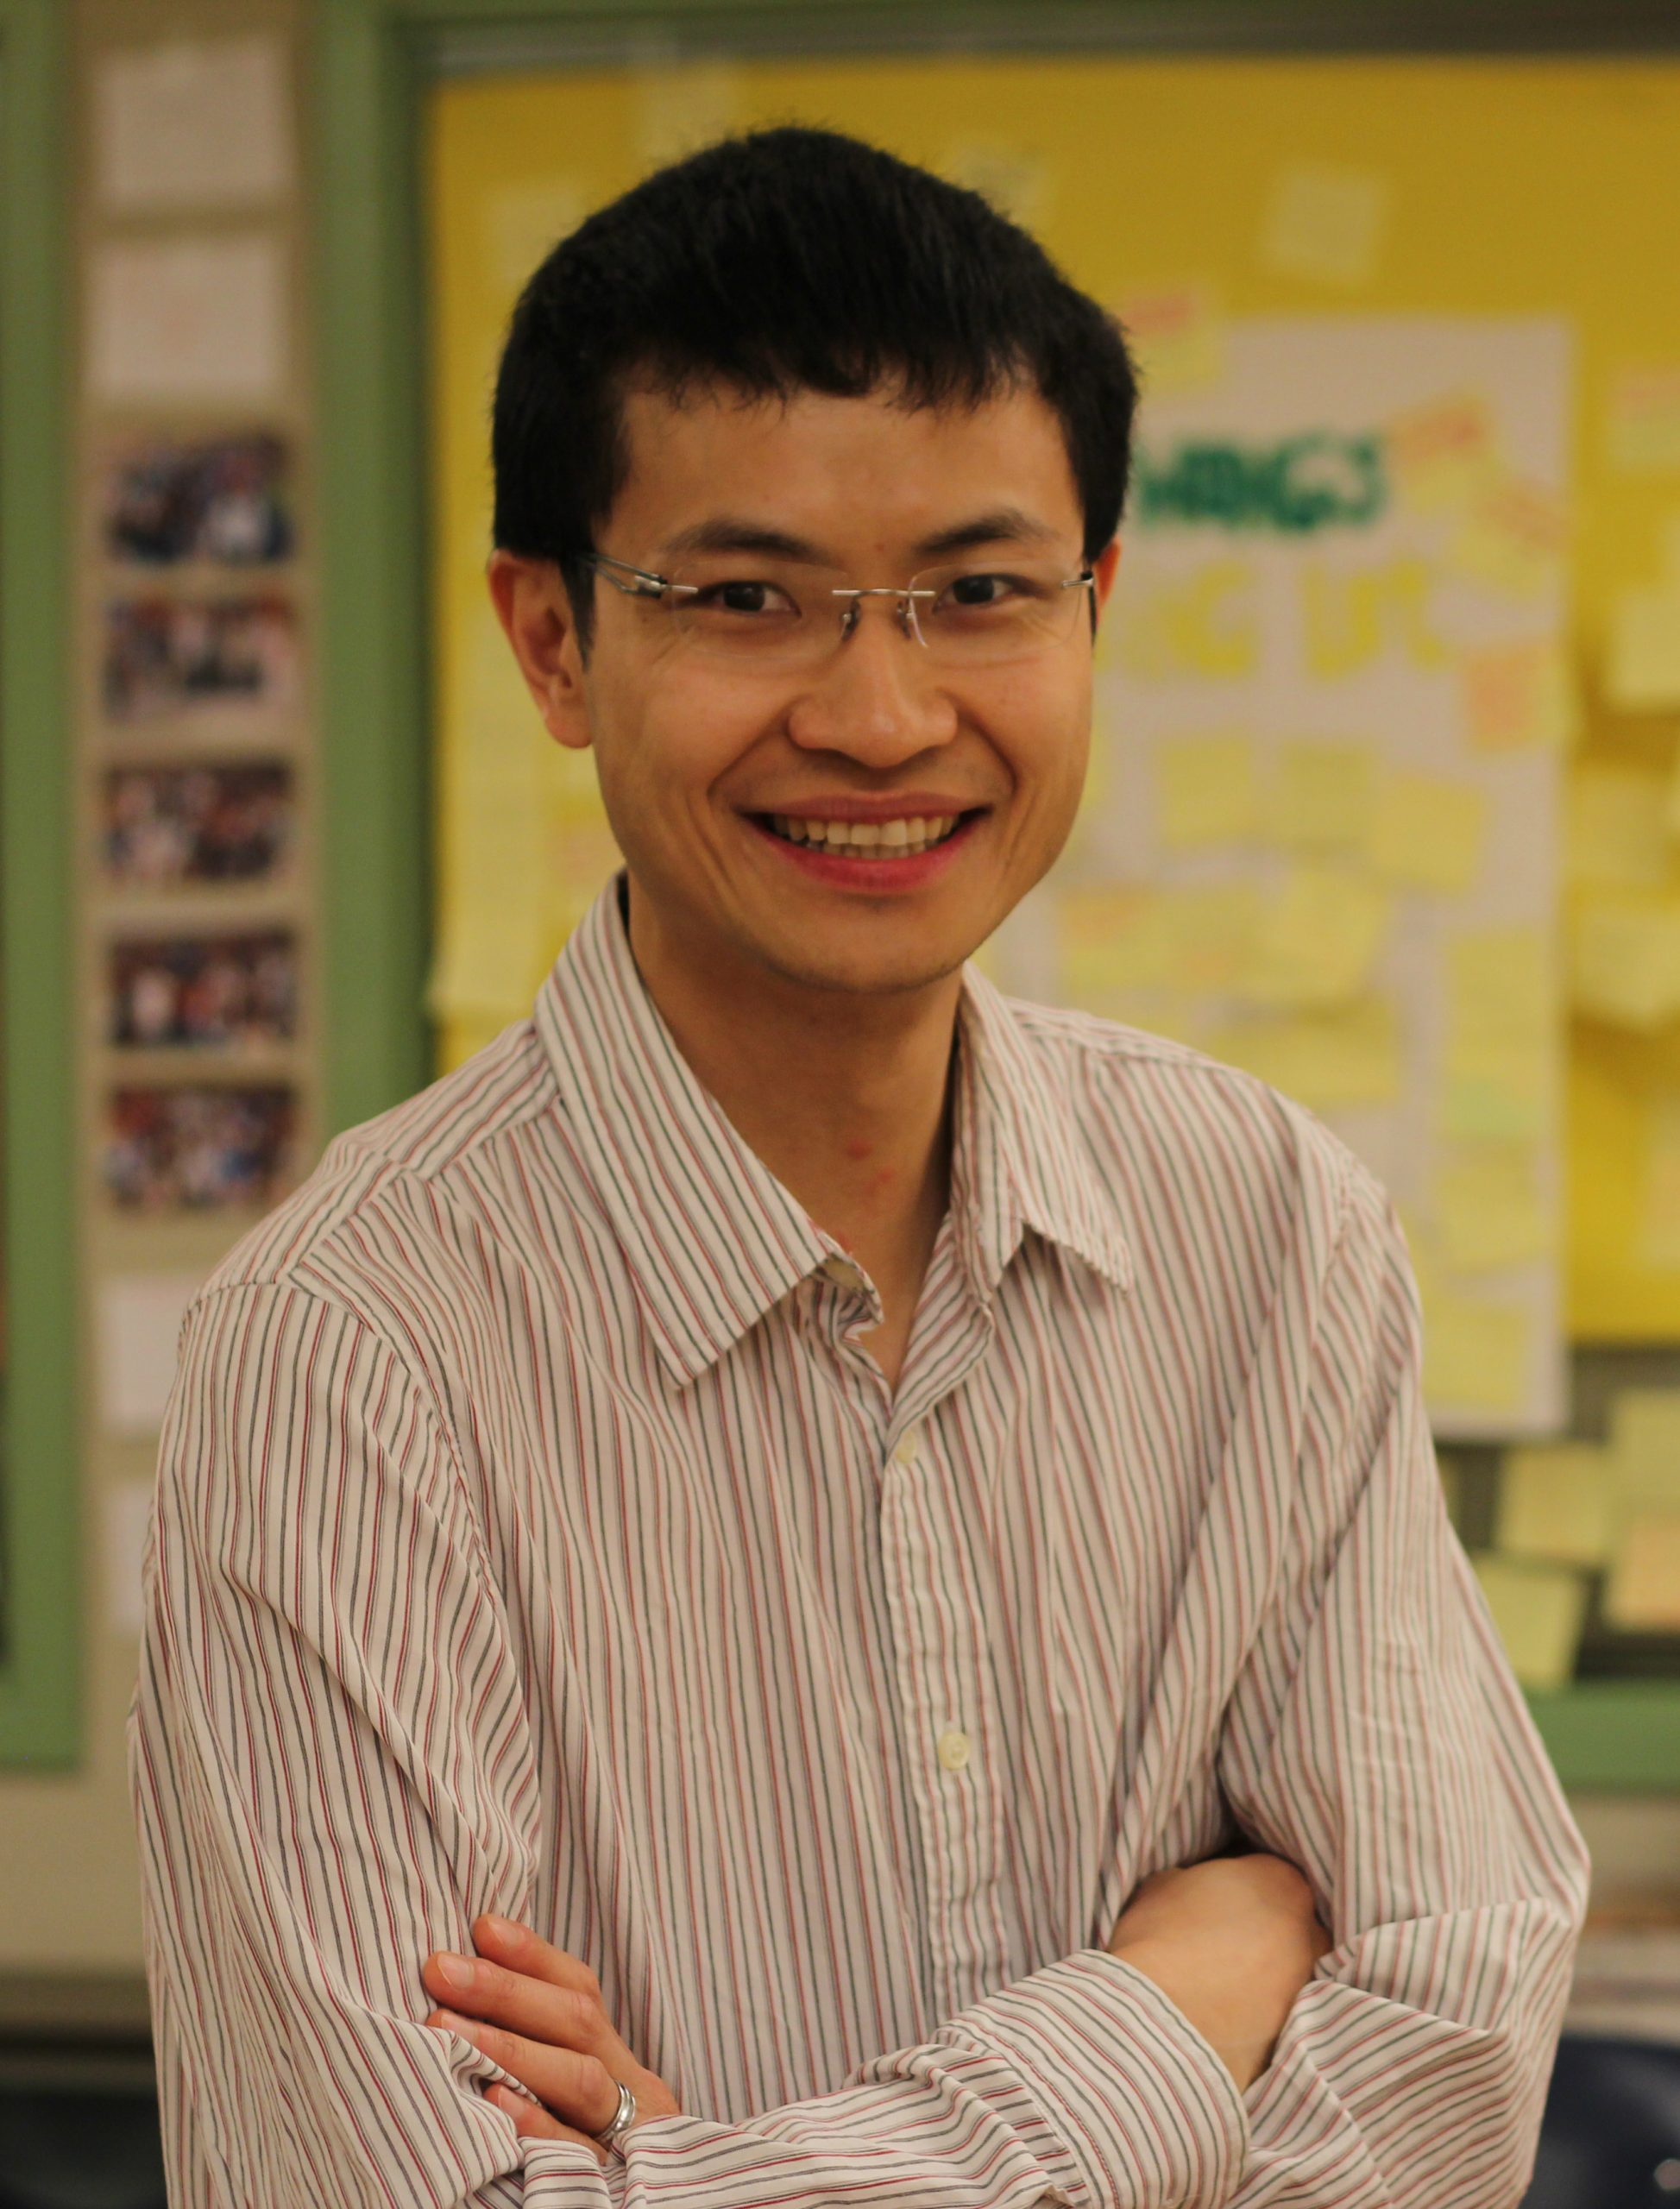 William Wong supports SEF for the support he received as a teacher